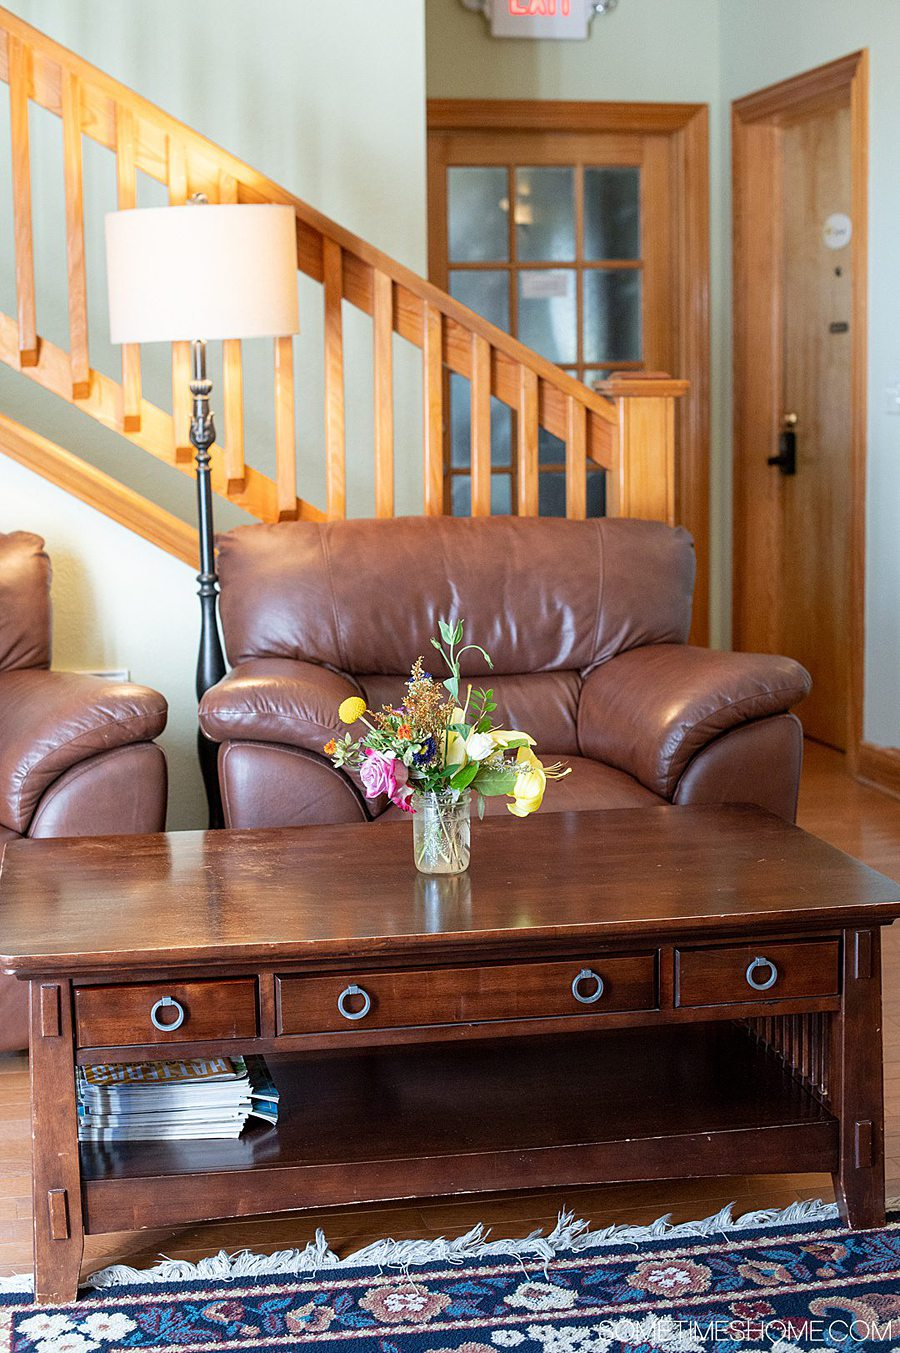 Two brown leather chairs and a brown coffee table in front of a staircase in a room. The table has a vase with colorful flowers in a room. There is a floor lamp to the left of the right chair.